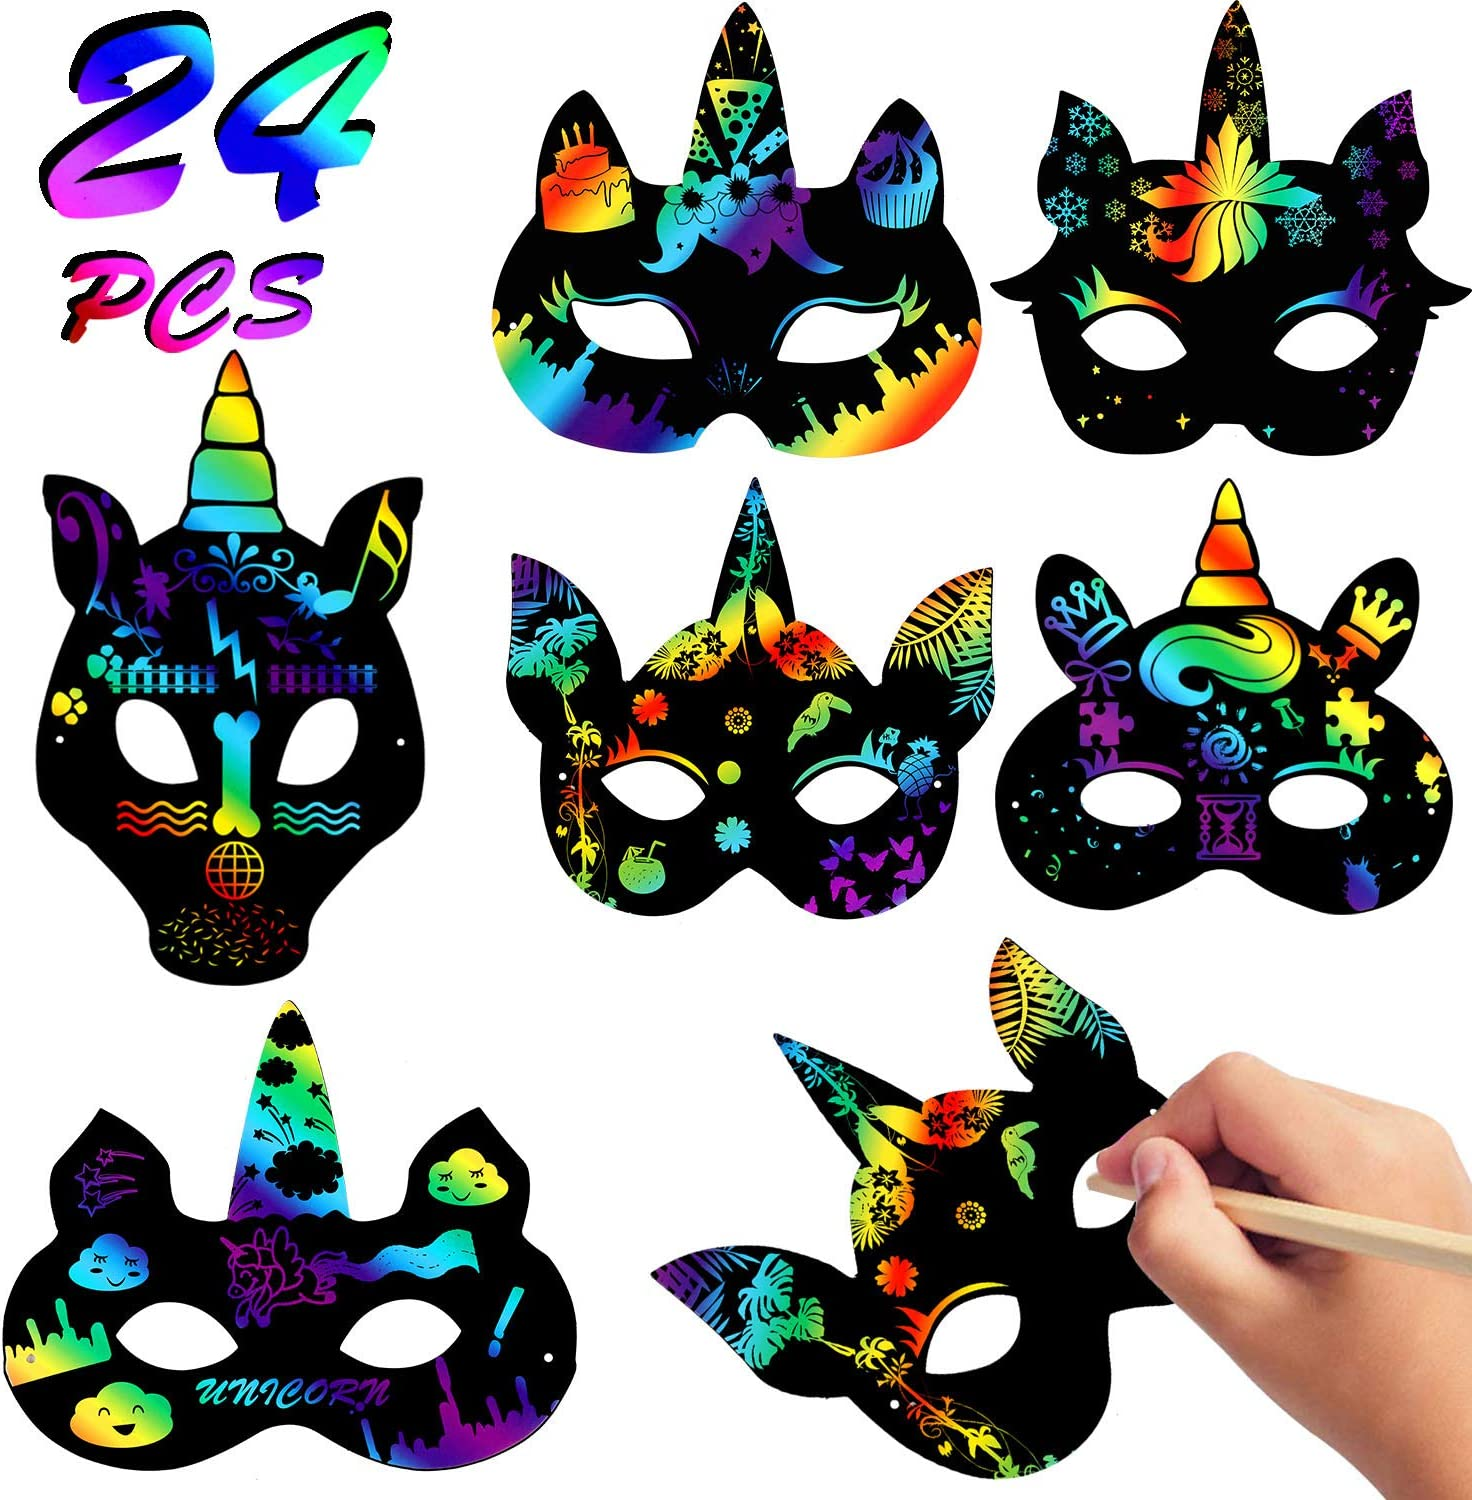 Casun Scratch Art Paper,Rainbow Crafts Kit 50 Pcs Scratch Art for Kids Toys for Girls 6-8 Years Old Black Scratch Best Gifts for Boys Ages 4-12